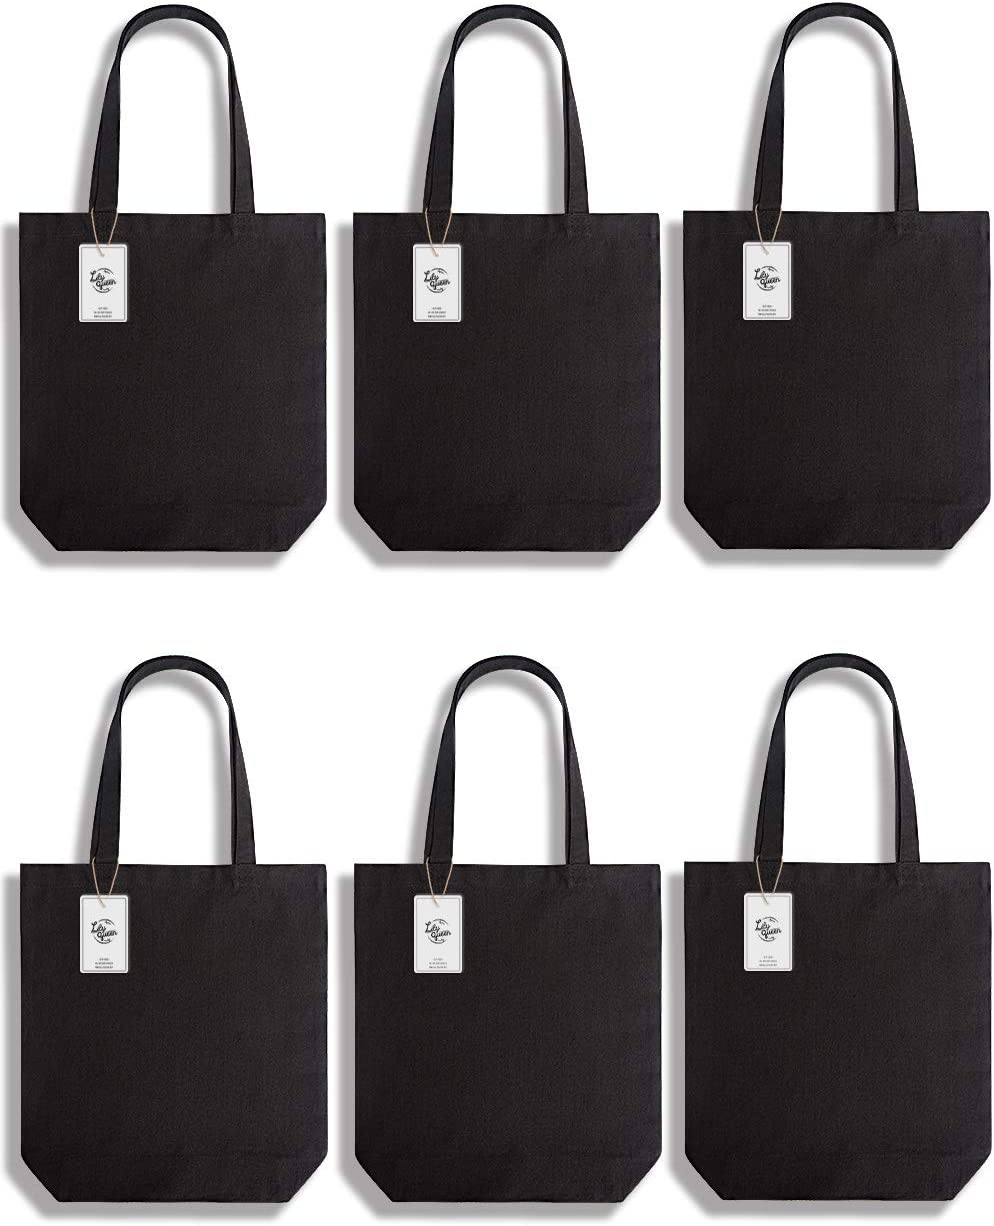 Lily Queen Natural Canvas Tote Bags DIY Reusable Shopping Grocery Bag (Black - 6 Pack)